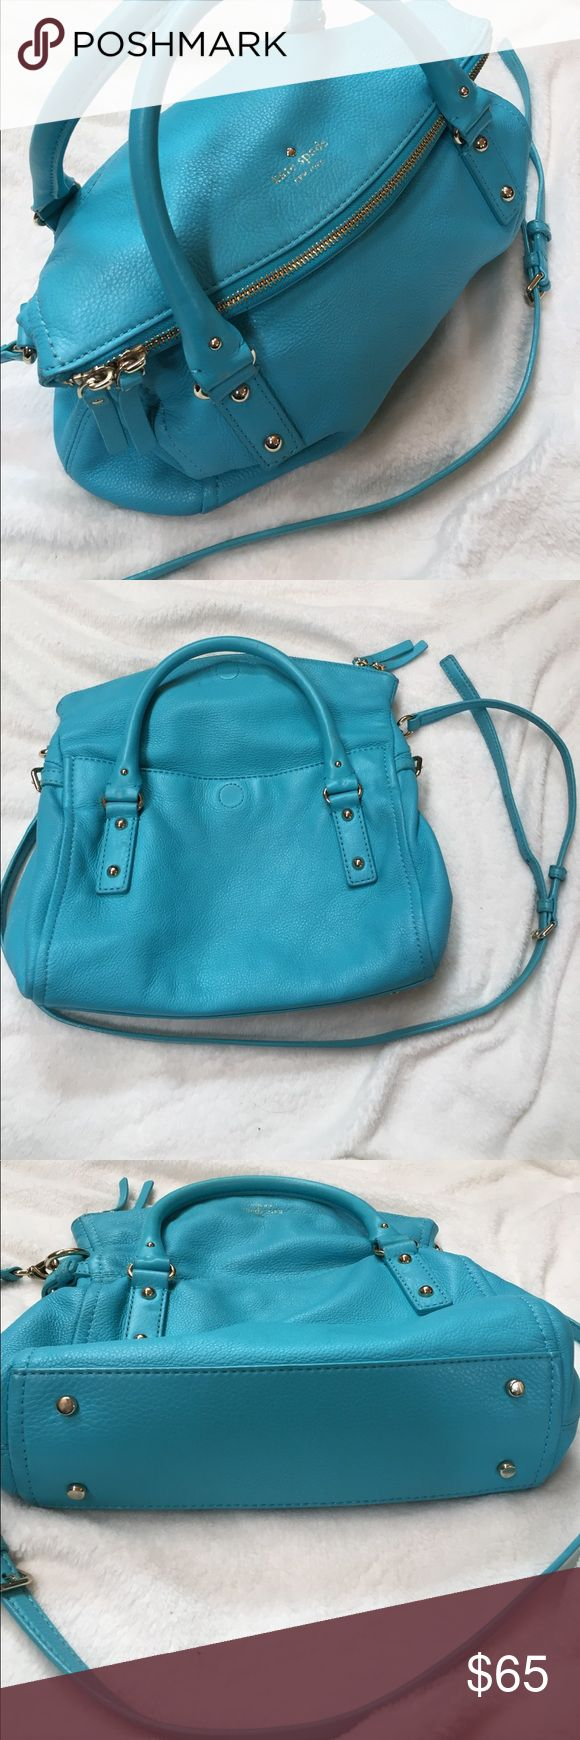 Kate Spade teal purse Kate Spade ♠️ leather cross body or hand purse. Beautiful color, with a zippered main compartment that folds over and closes magnetically to cover another open pocket. Some signs of wear in the hand and cross body straps. Body of the bourse is in excellent condition. Inside has some blue stains. All flaws shown in pictures. I bought this purse used and it smelled of cigarette smoke, which I removed from the outside leather, but the inside still slightly smells, but…